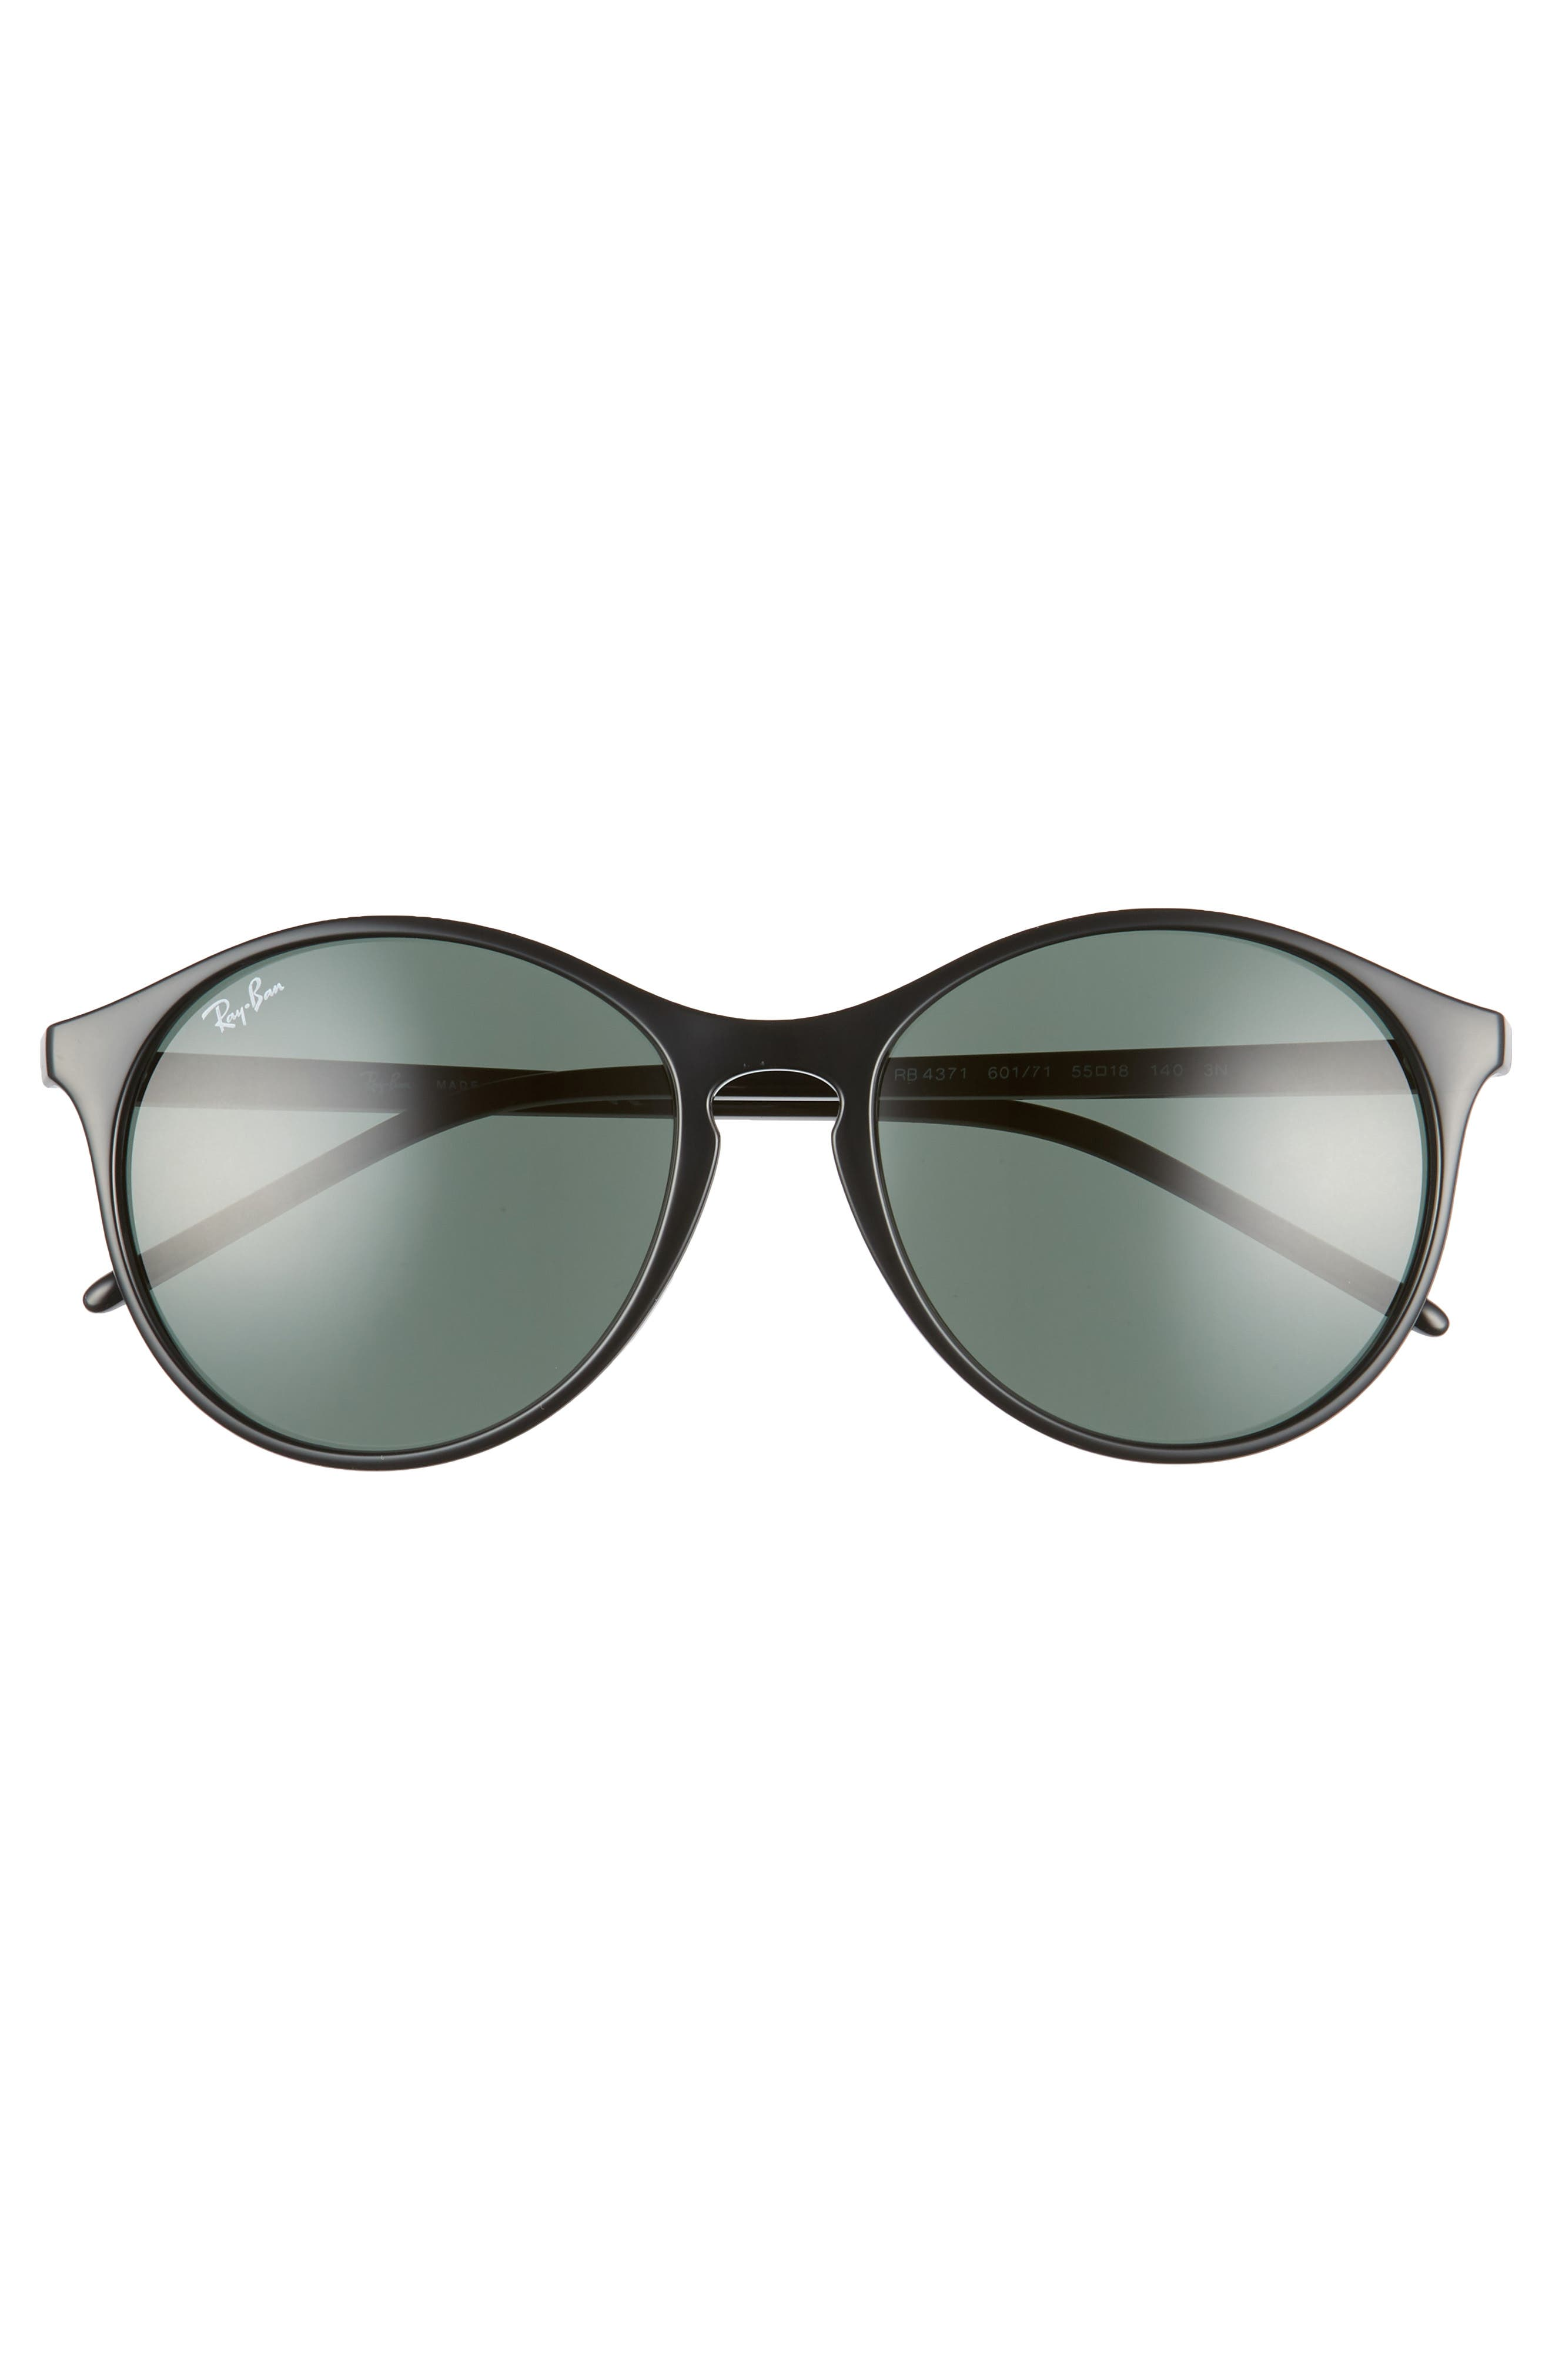 Highstreet 55mm Round Sunglasses,                             Alternate thumbnail 3, color,                             BLACK/ GREEN SOLID